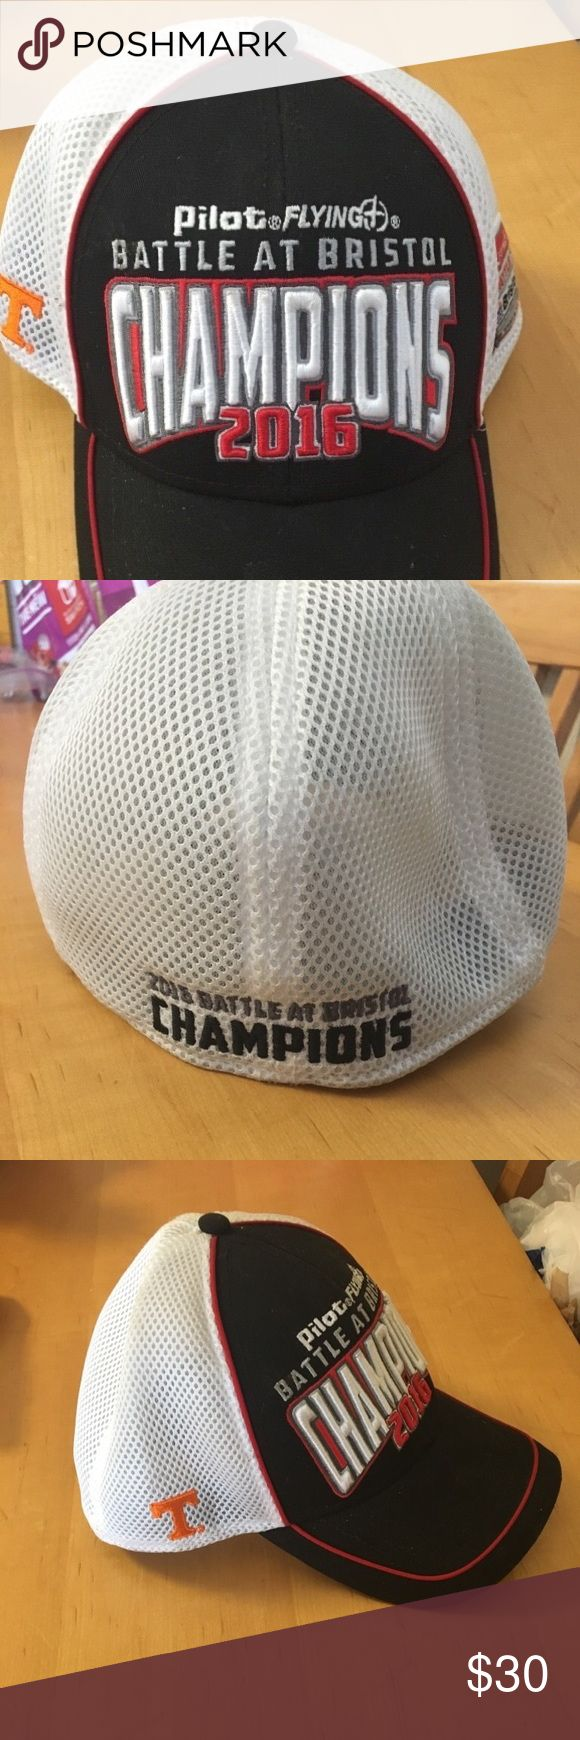 Championship Tennessee Vols Battle at Bristol Hat! Brand new without tags! Collectible item! From the September 2016 Battle At Bristol at Bristol Motor Speedway! Accessories Hats